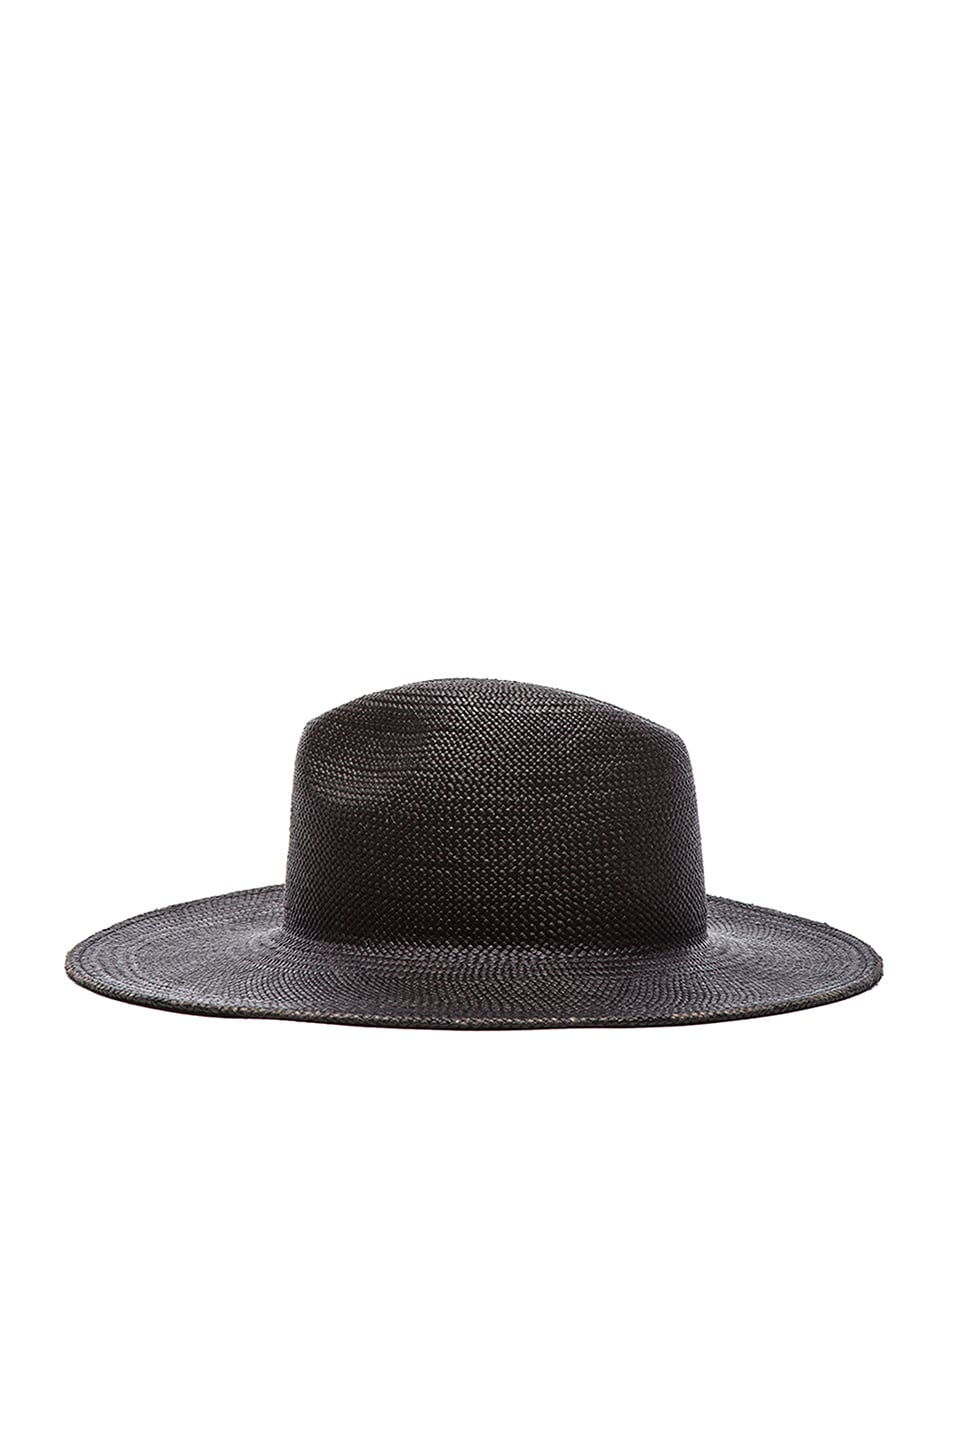 Image 4 of Janessa Leone Rita Straw Hat in Black